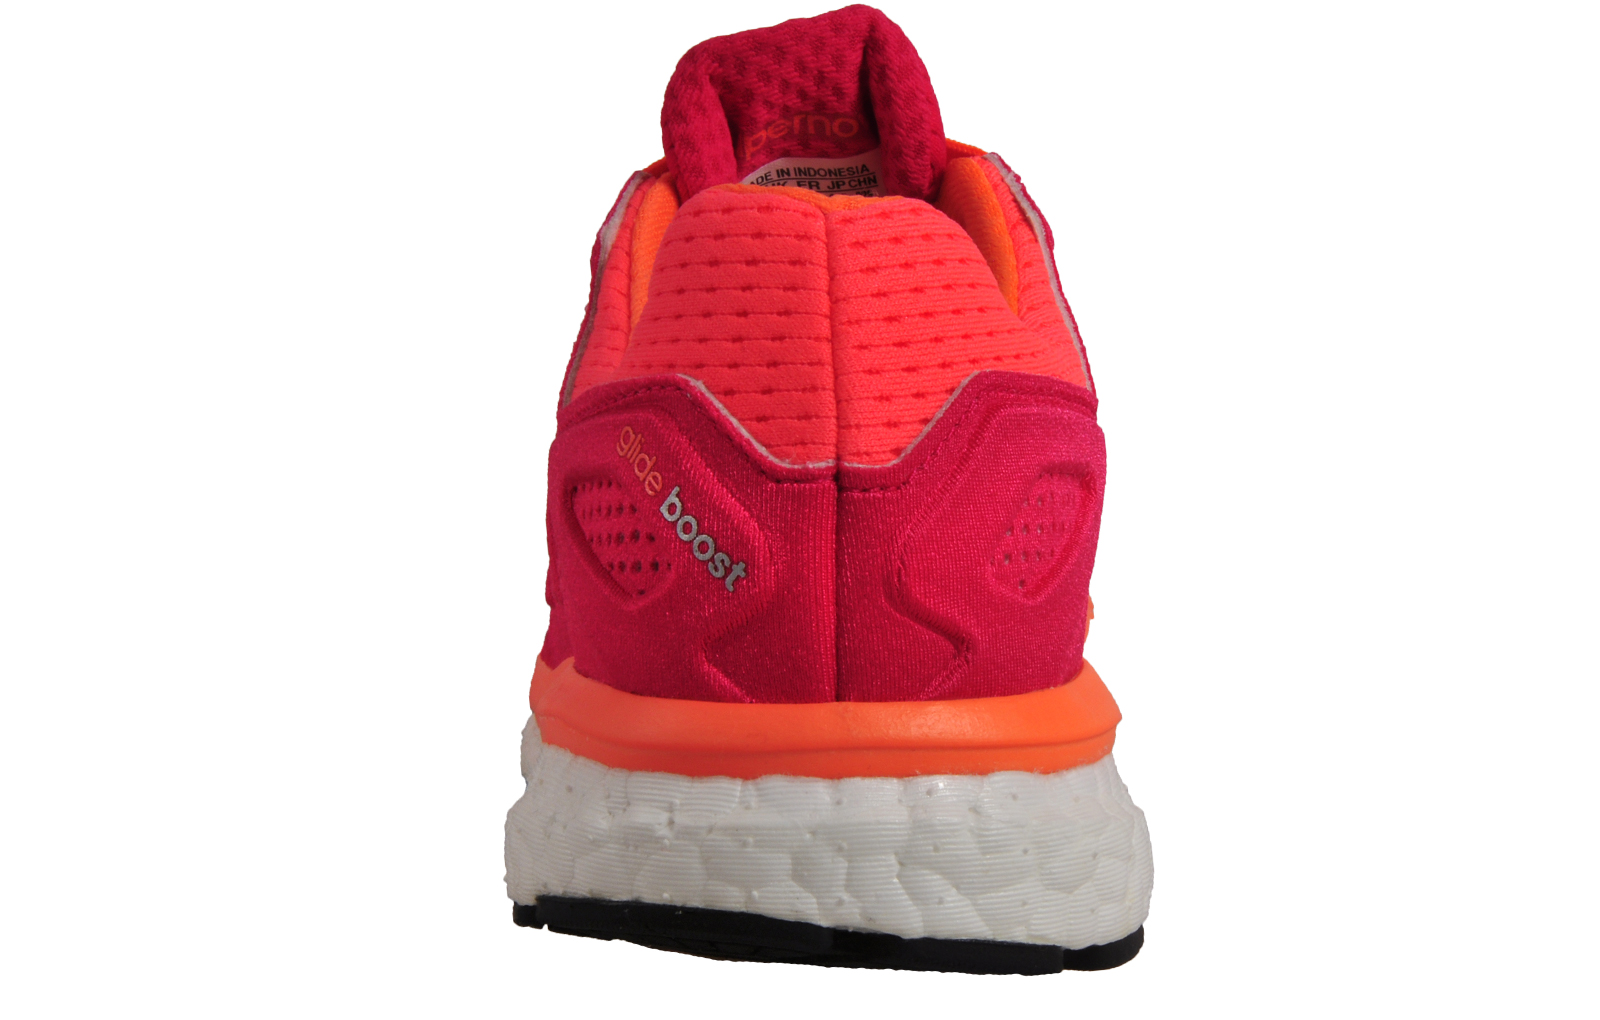 3f6cf03bd Adidas Supernova Glide Boost 7 Womens Premium Running Shoes Gym Trainers  Pink